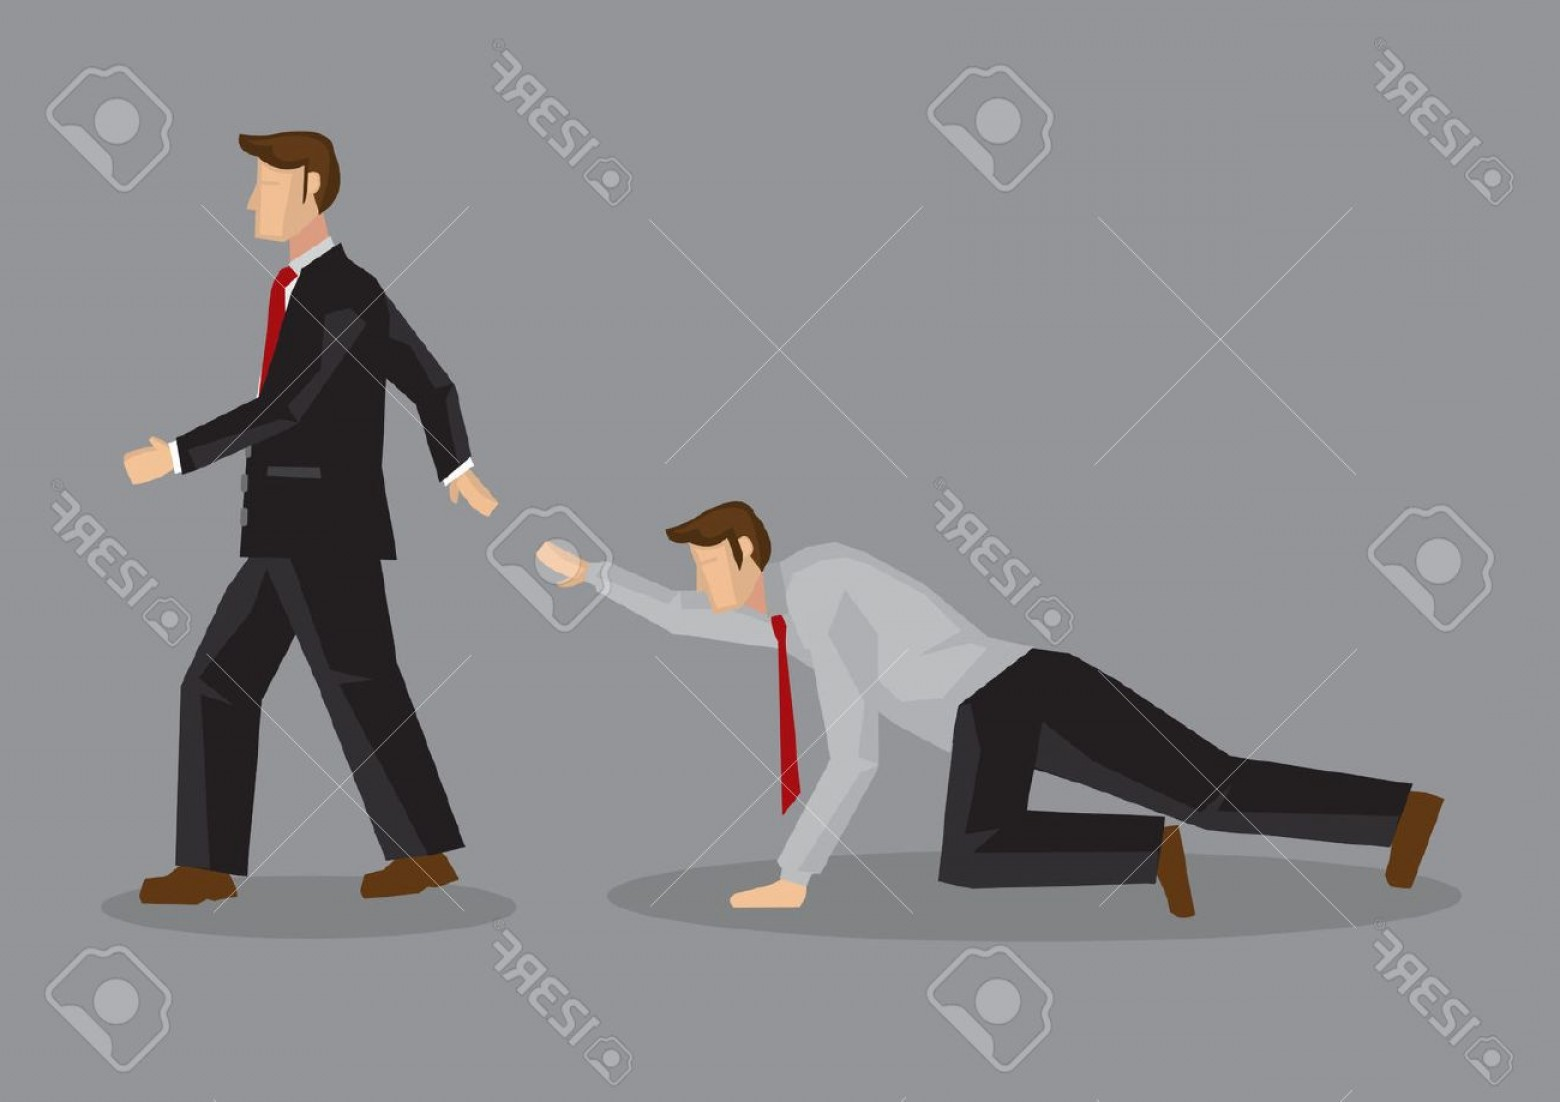 Walking Away Vector: Photostock Vector Cartoon Uncaring Businessman Walking Away From Coworker Crawling On The Floor And Calling Out For He